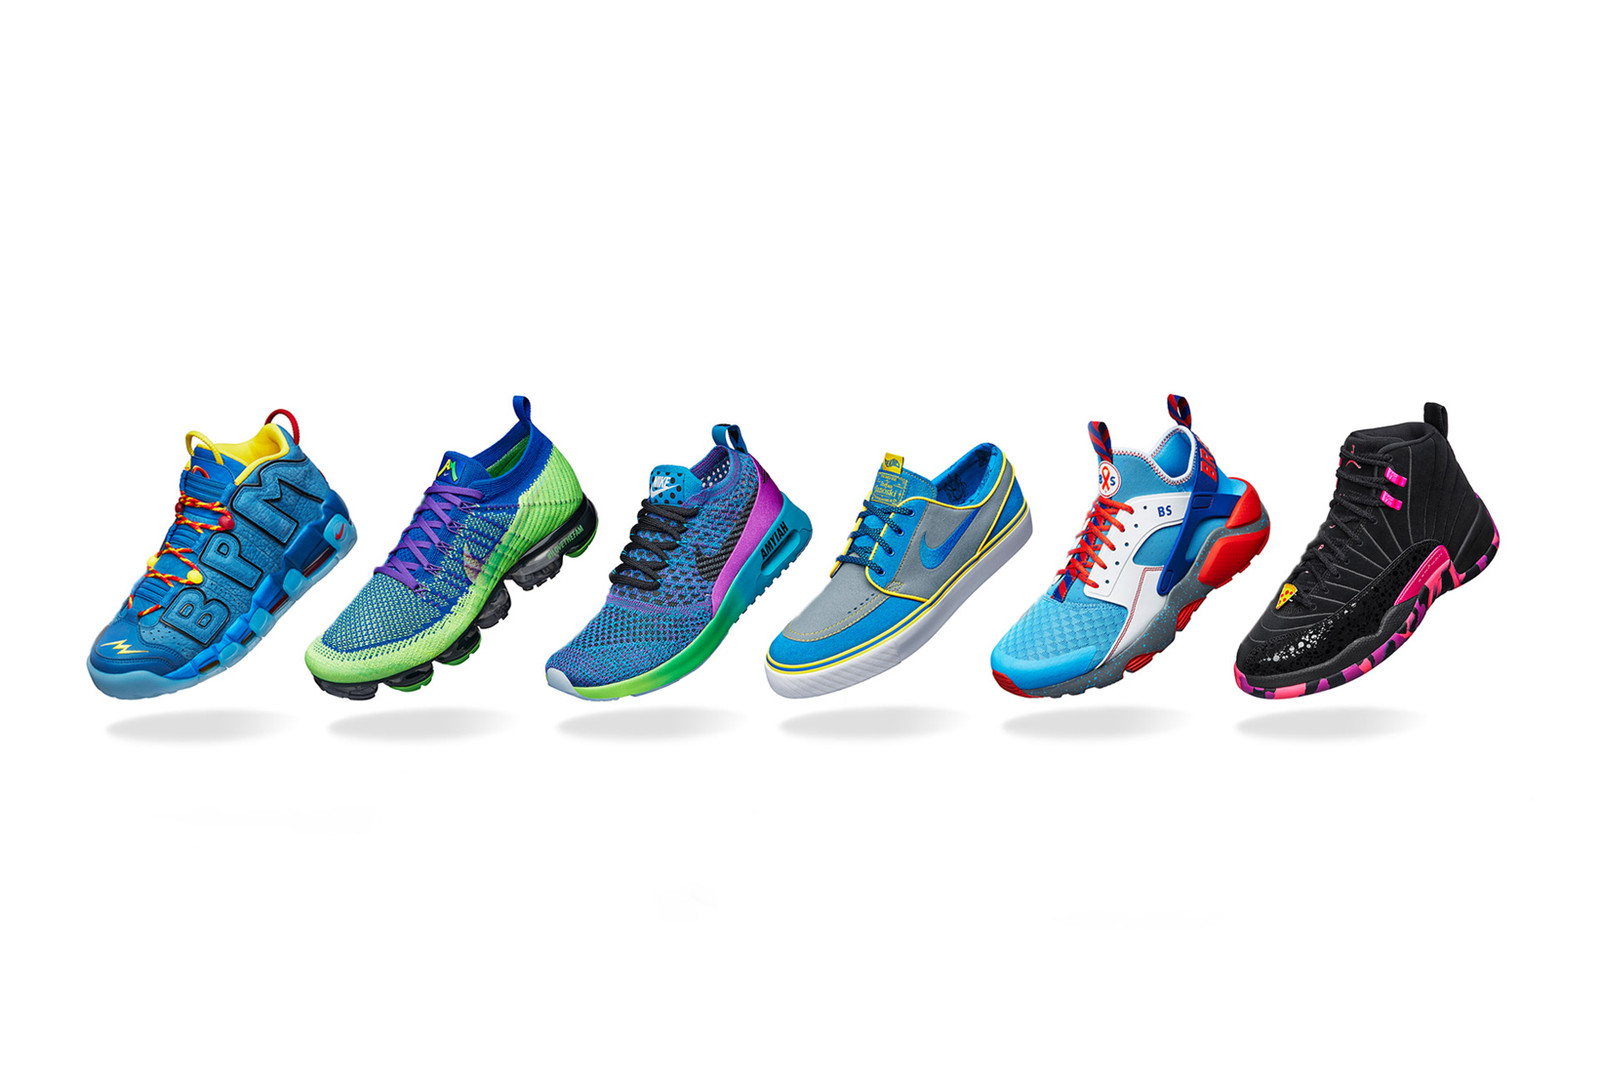 Nike 2017 Doernbecher Freestyle Collection Unveiled OHSU Oregon Swoosh Air Jordan 12 Air Max Thea Air More Uptempo Air Huarache SB Zoom Stefan Janoski Air VaporMax Flyknit